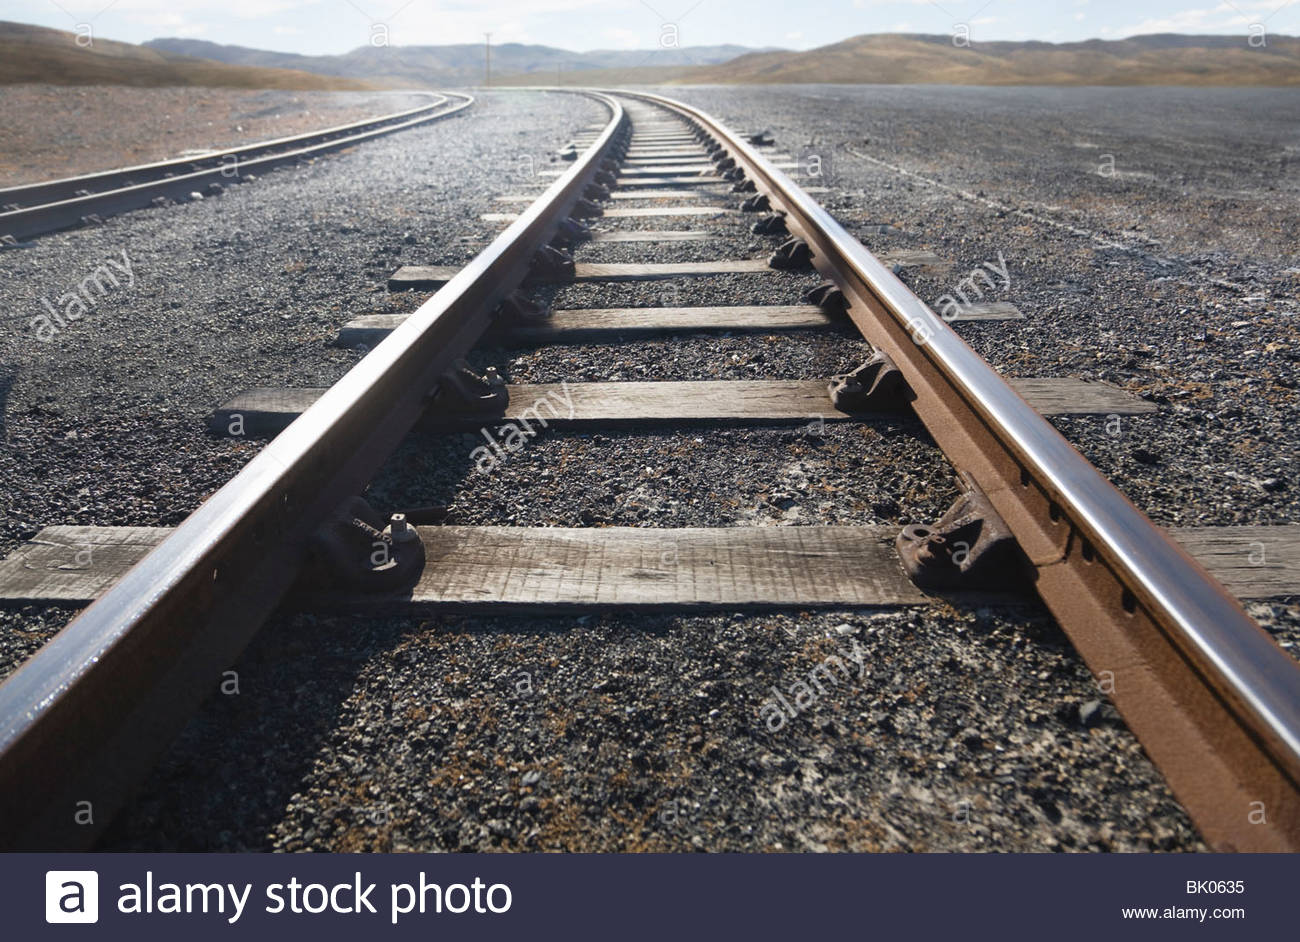 Train tracks stretching into distance - Stock Image